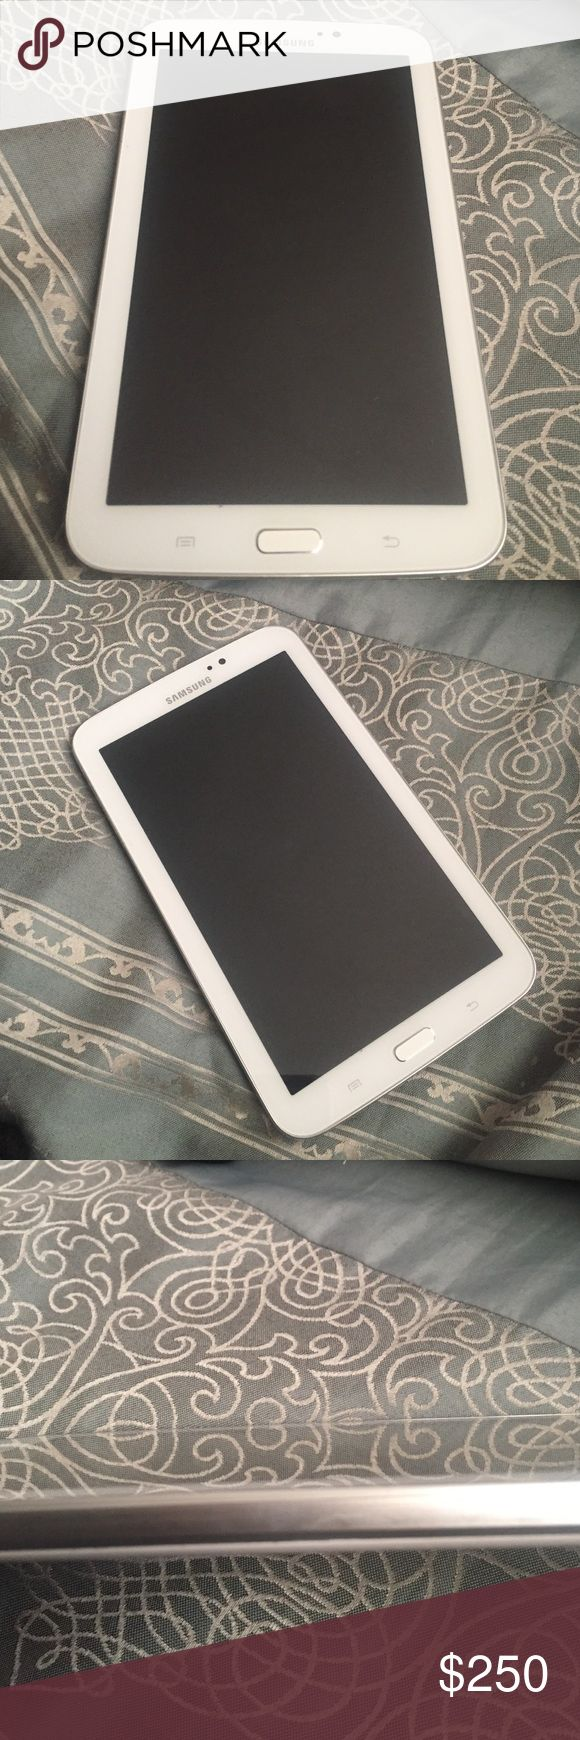 Samsung Galaxy Tablet 3 Looking to sell my galaxy tablet , tablet works perfect just looking to upgrade to a iPad samsung Accessories Tablet Cases